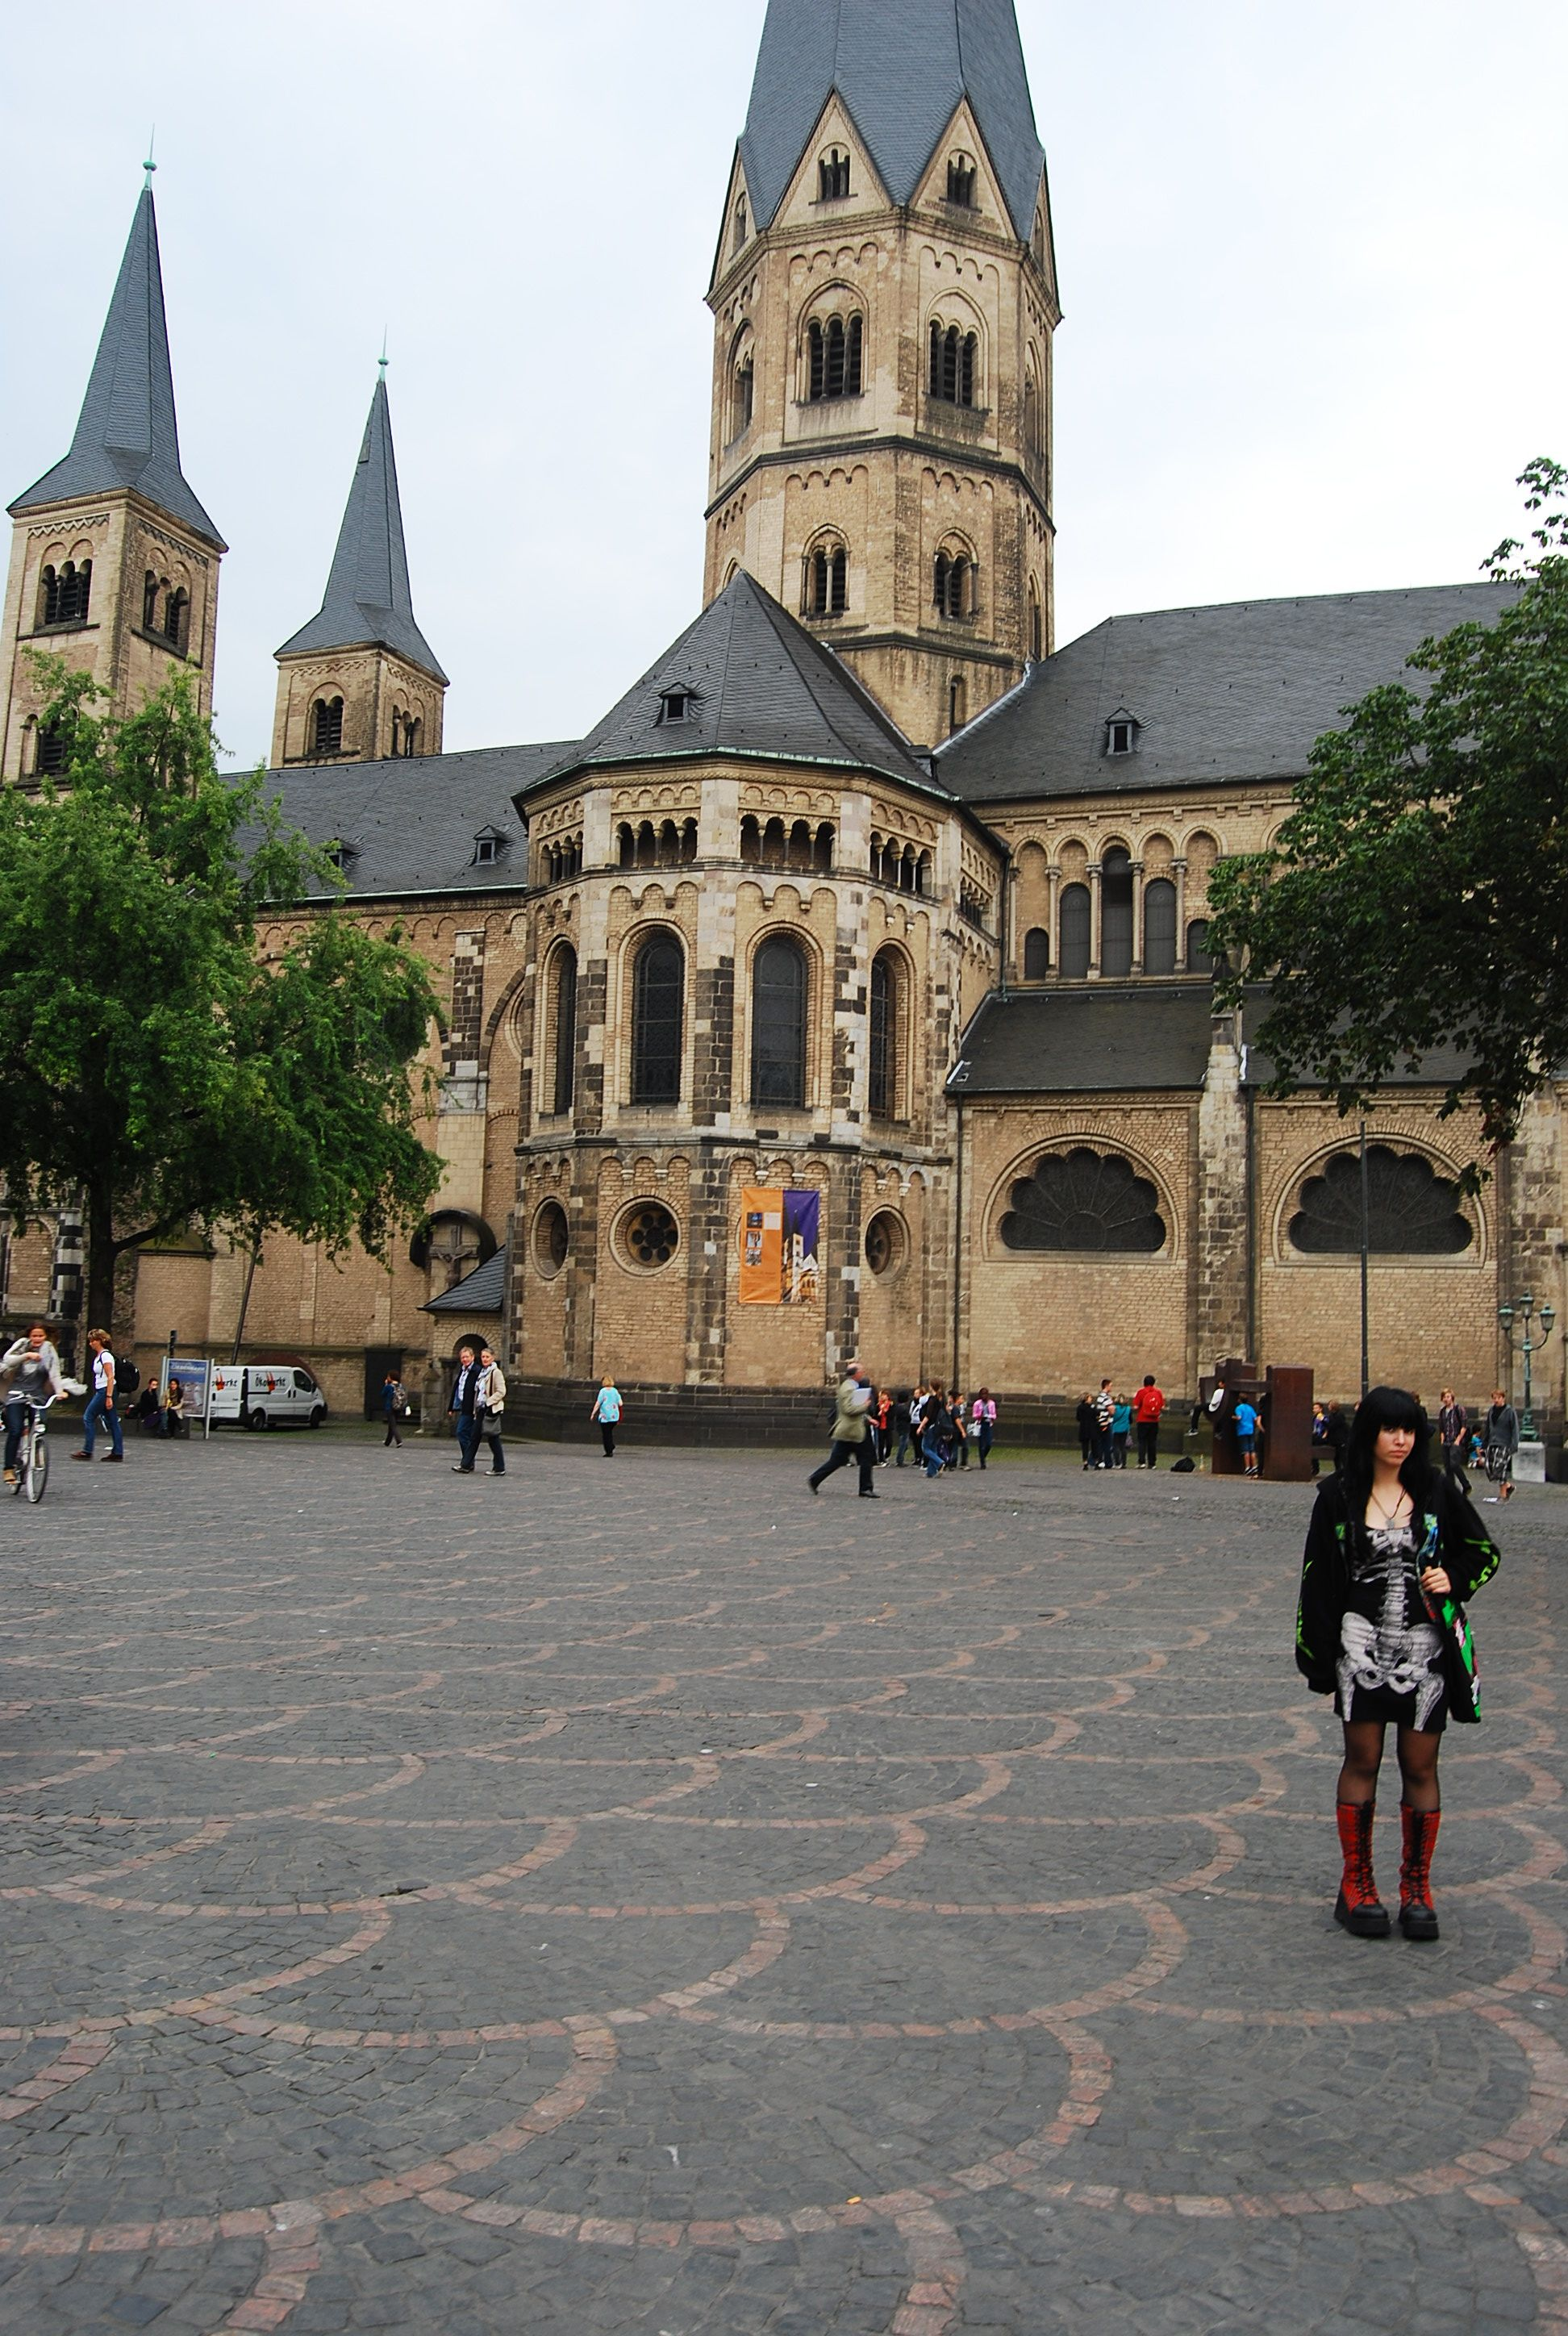 Hrs Bonn bonn germany i want to go see this place one day check out